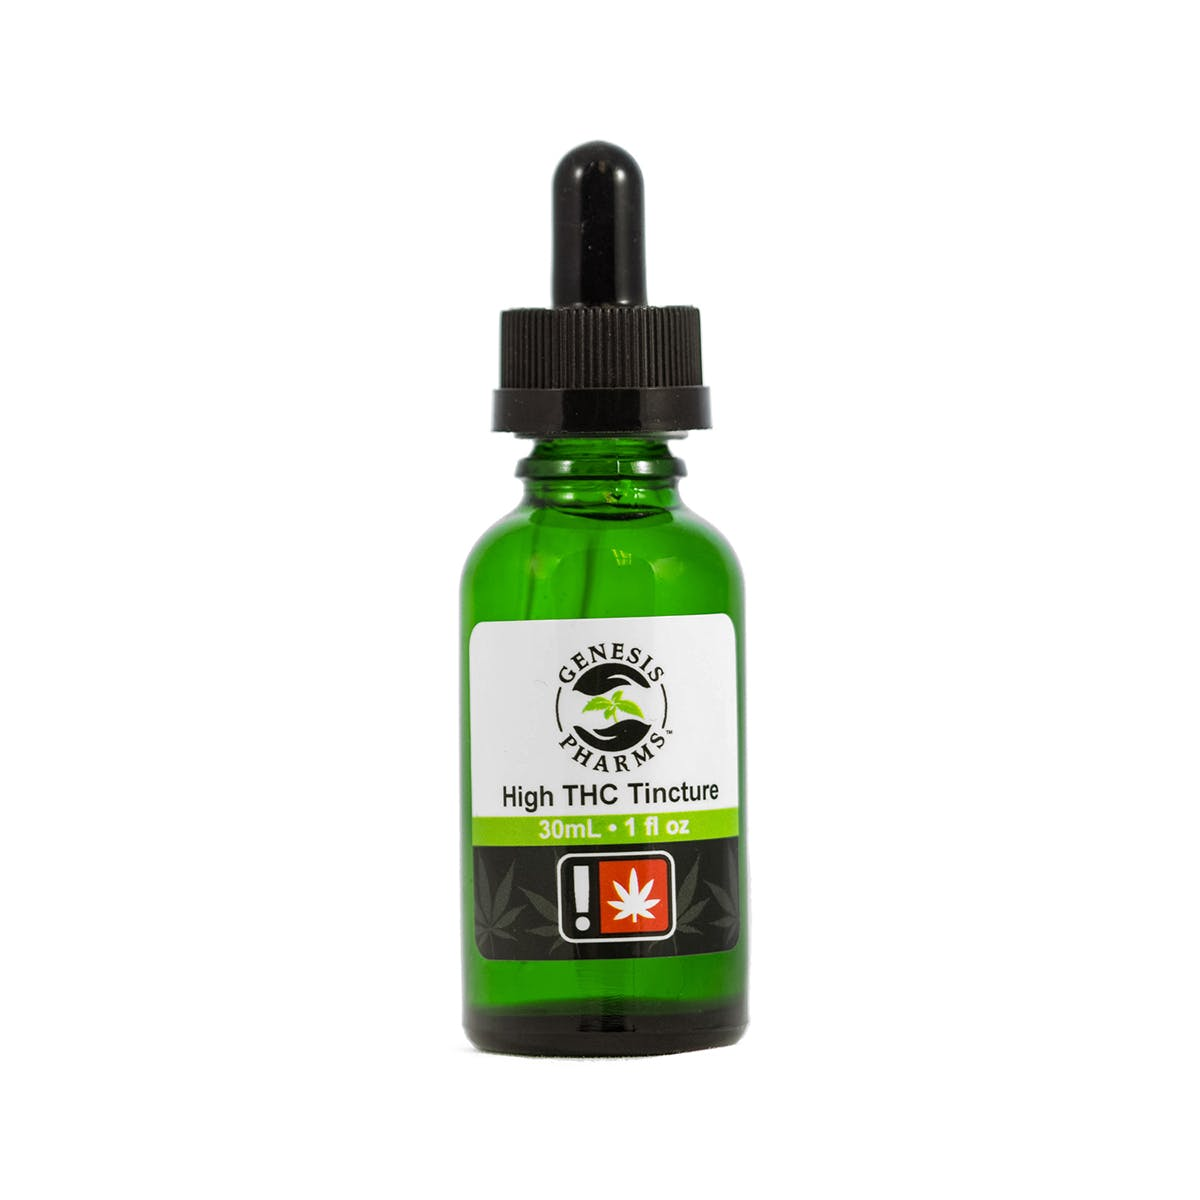 marijuana-dispensaries-brickhouse-cannasseurs-in-portland-high-thc-tincture